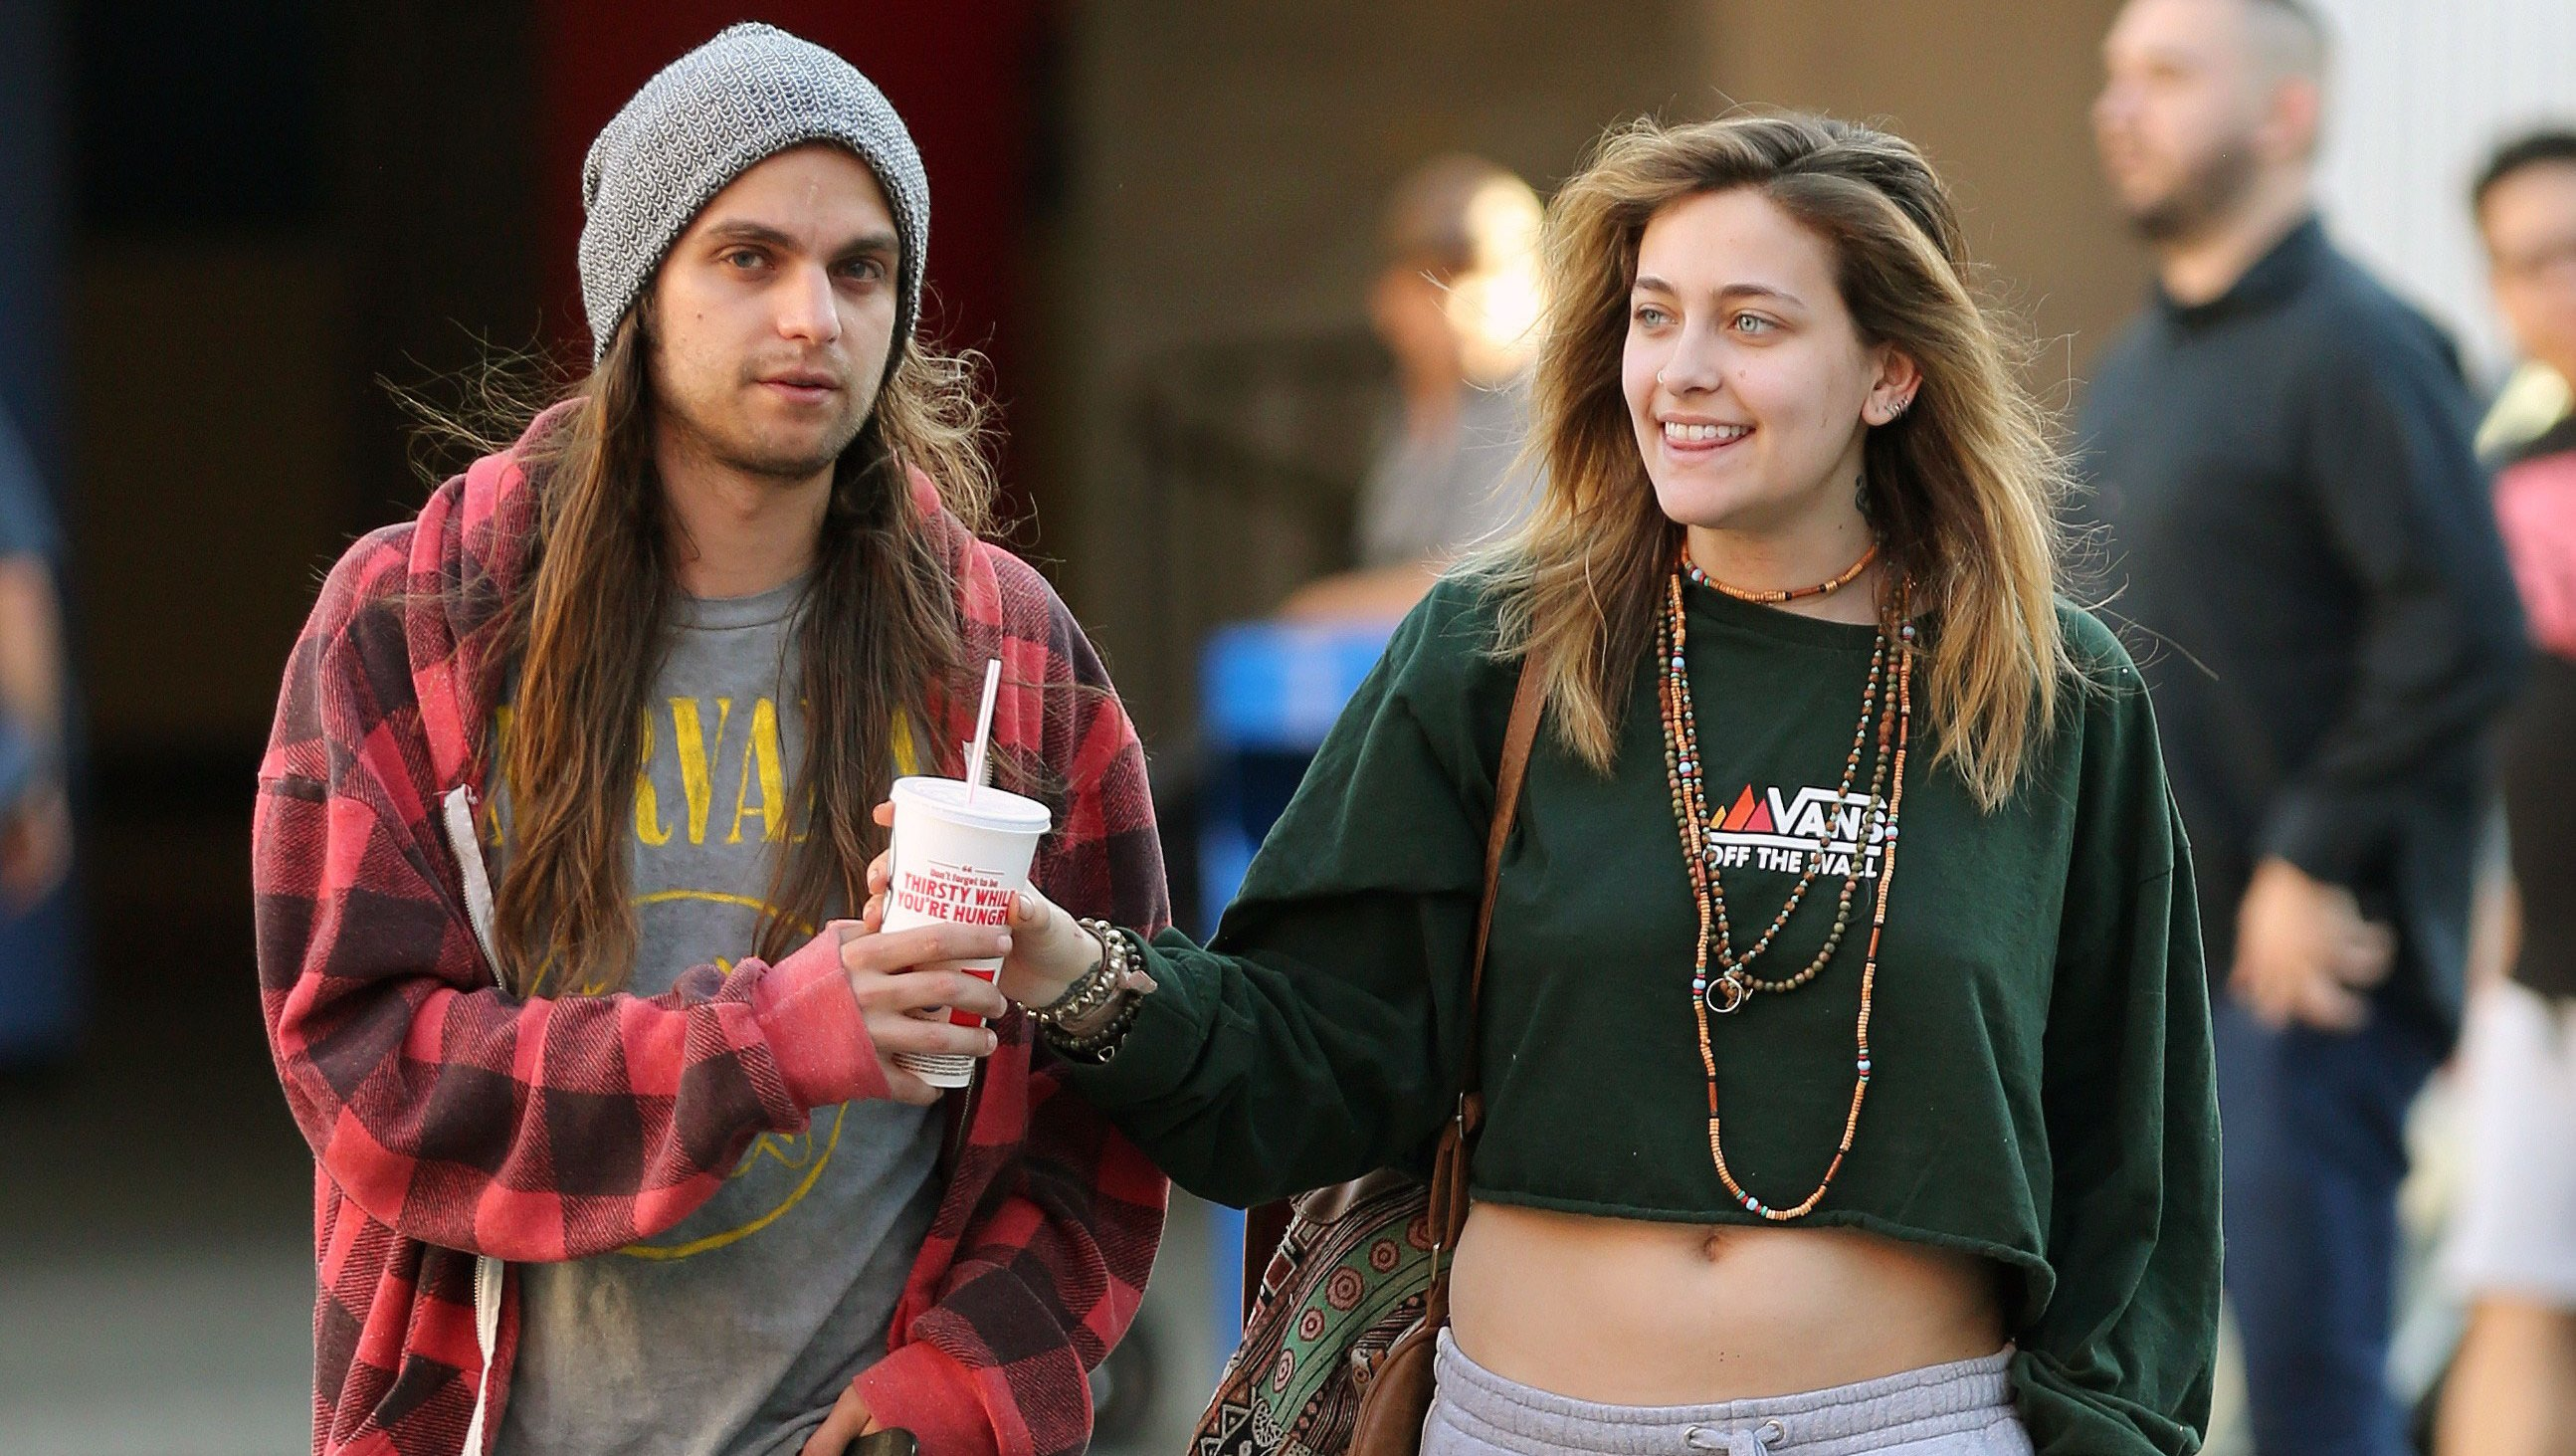 Paris Jackson Steps Out With BF Hours After Reported Hospitalization